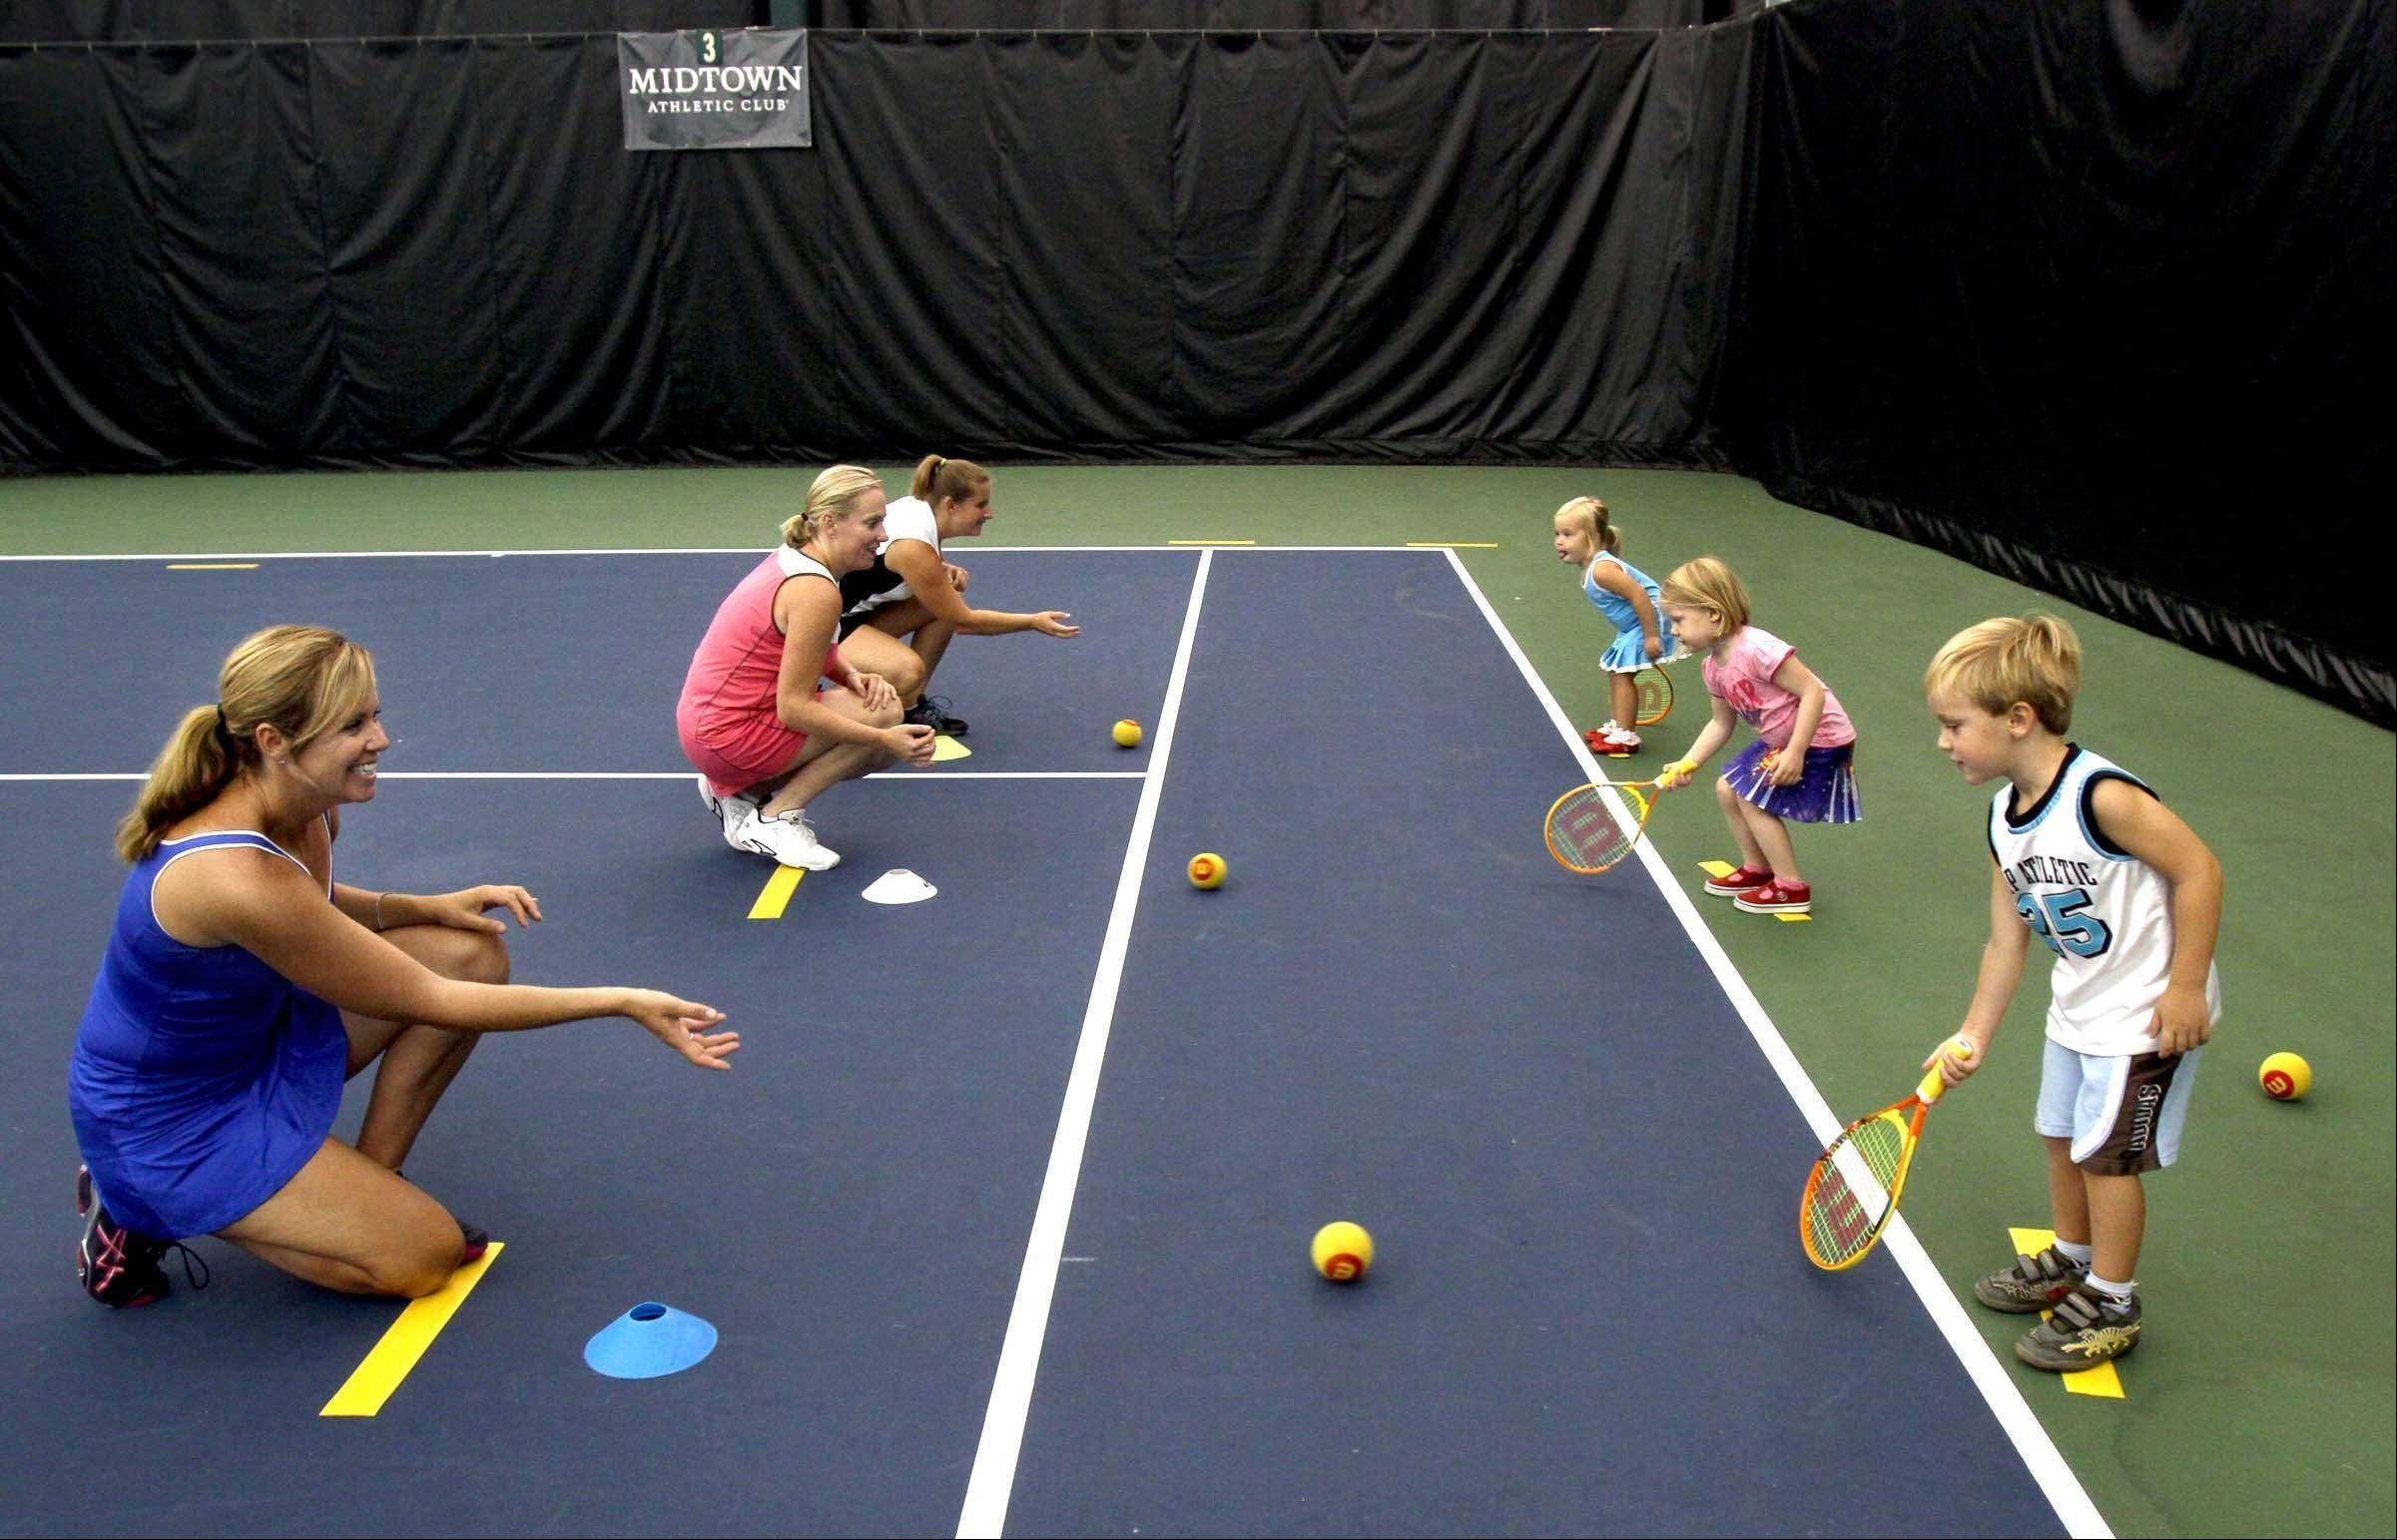 Moms and their children take part in Midtown Athletic Club's toddler tennis program, Tennis Explorers. In the foreground, Maggie Tepas of Barrington works with her 4-year-old son, Luke.